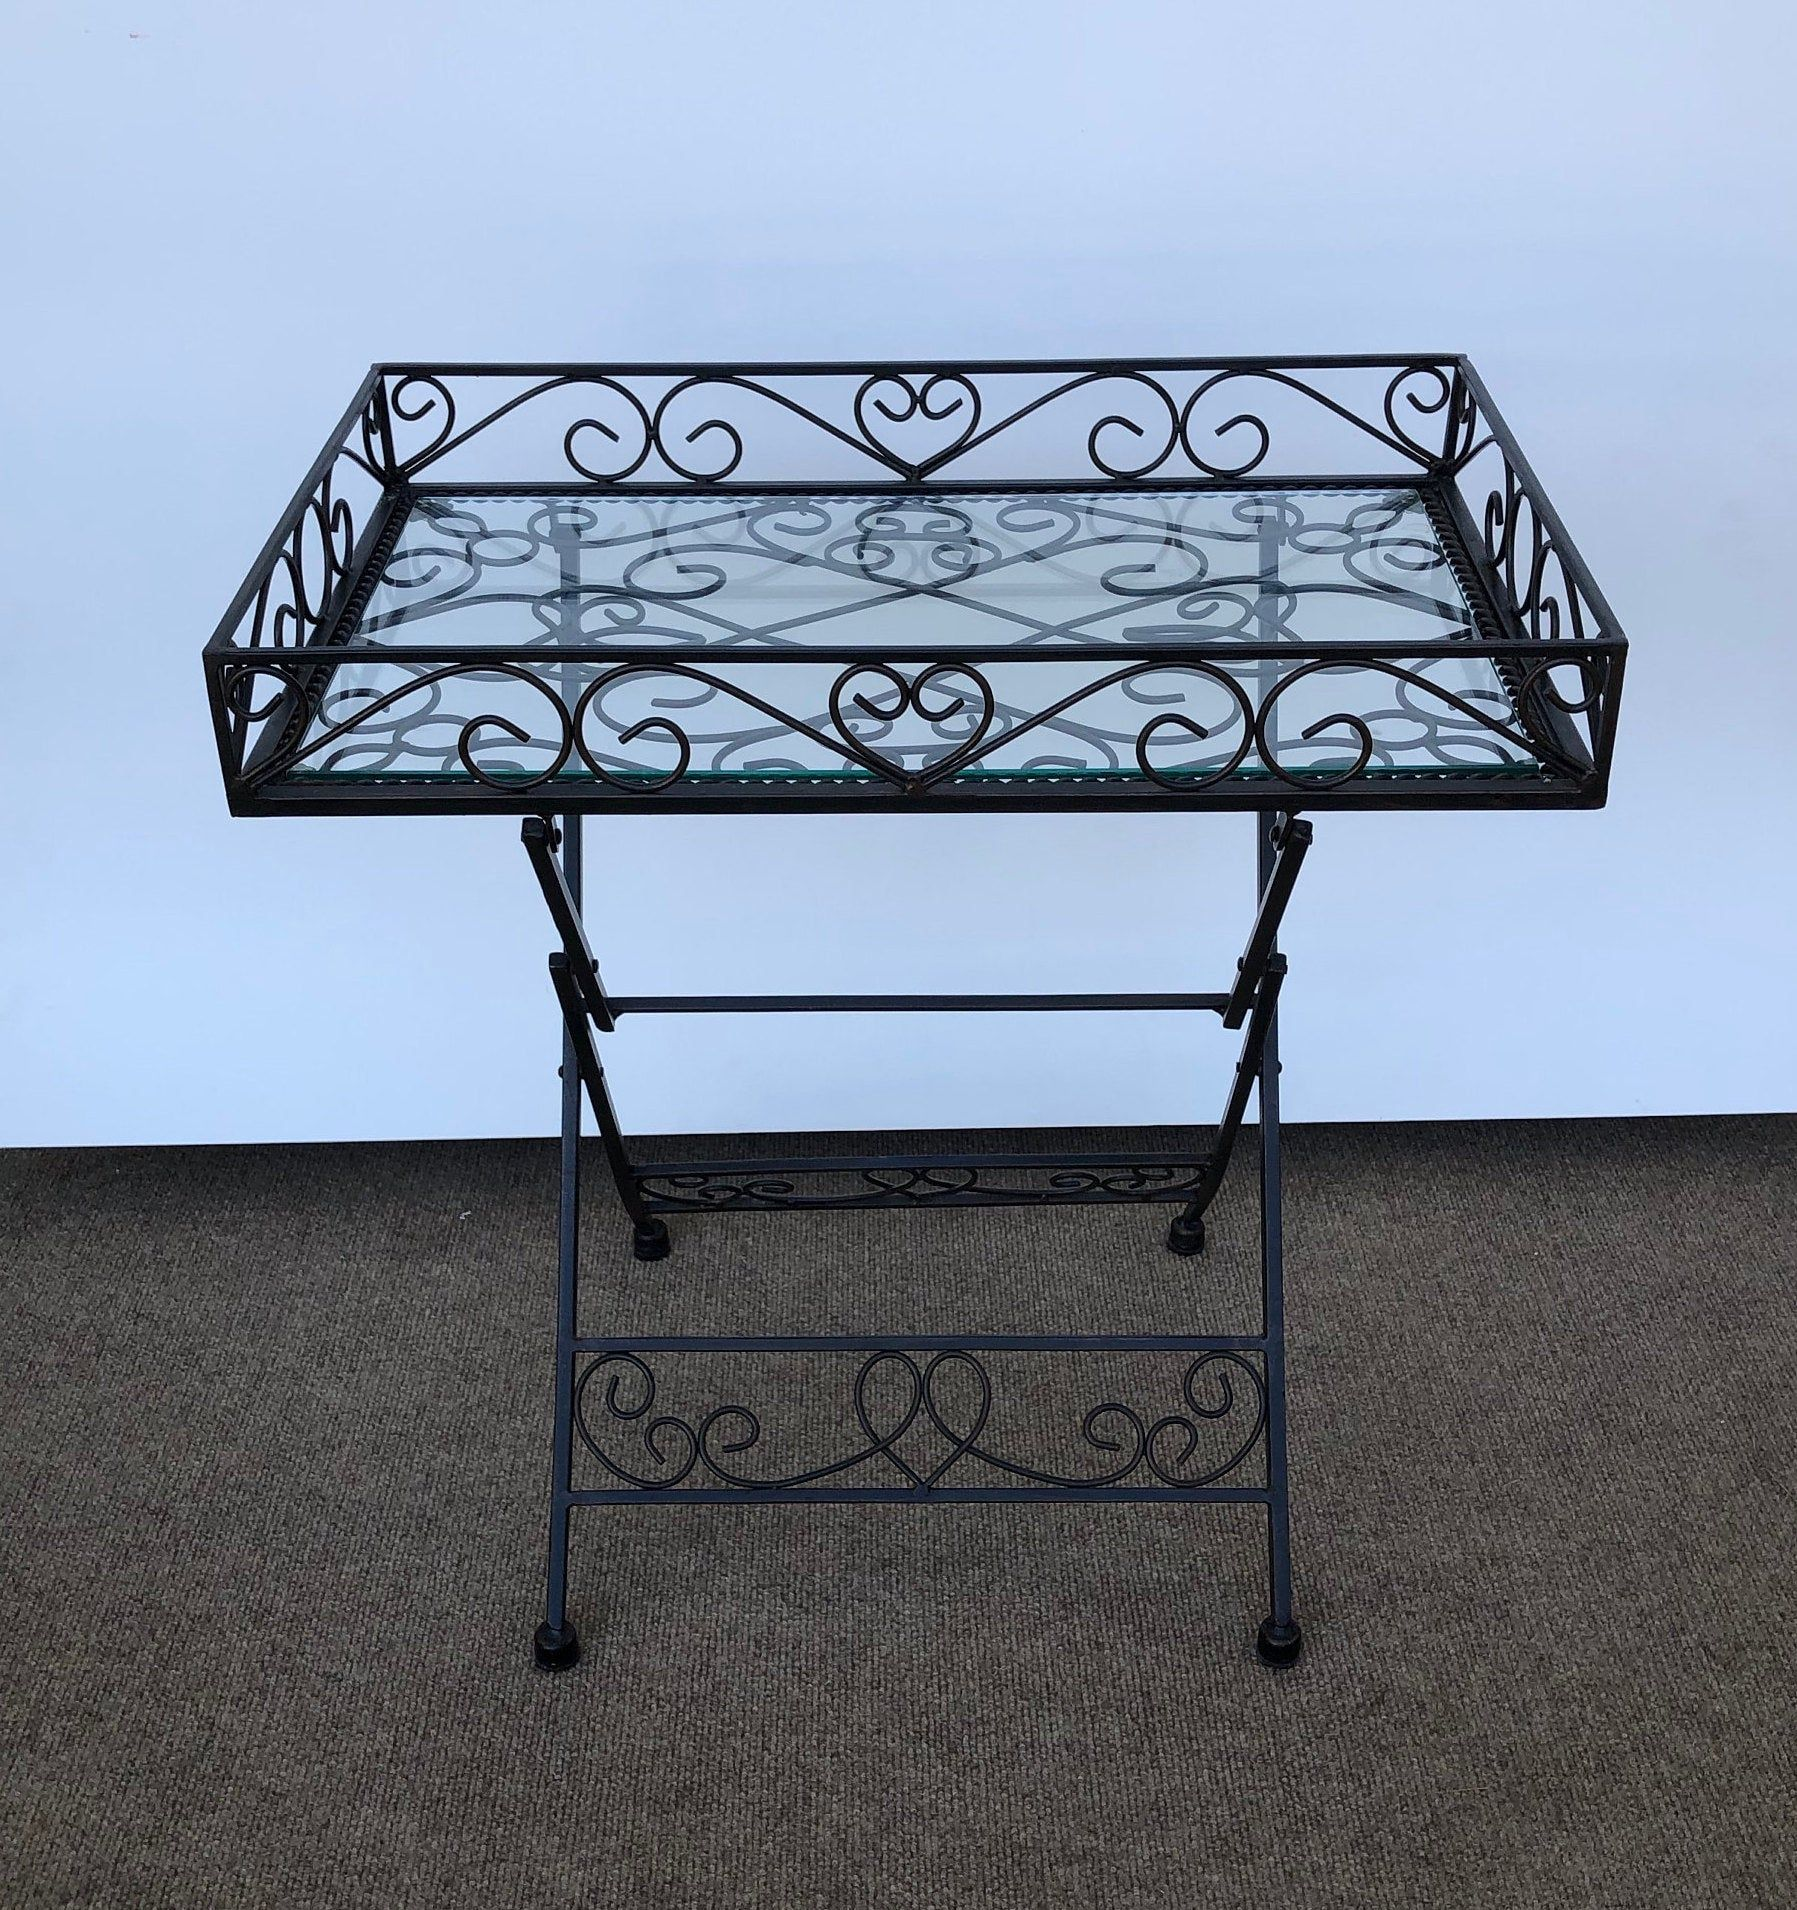 Wrought Iron Folding Metal Table Glass Top Patio End Table